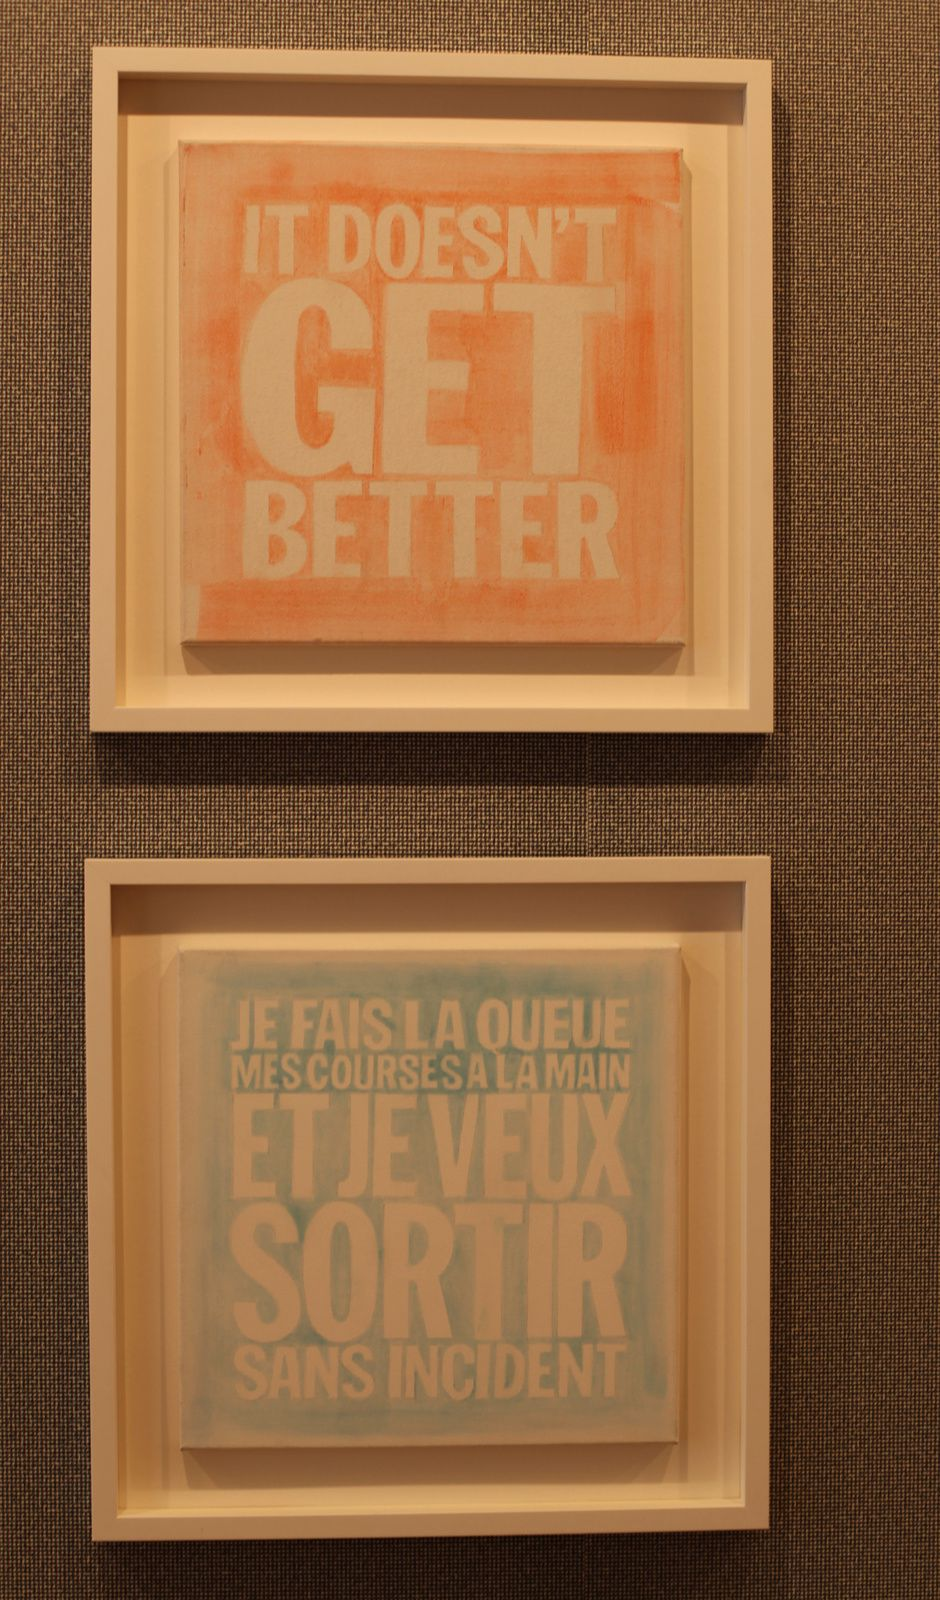 """Je fais la queue mes courses à la main et je veux sortir sans incident"", 2010 de John GIORNO - Courtesy Galerie Gagosian © Photo Éric Simon"